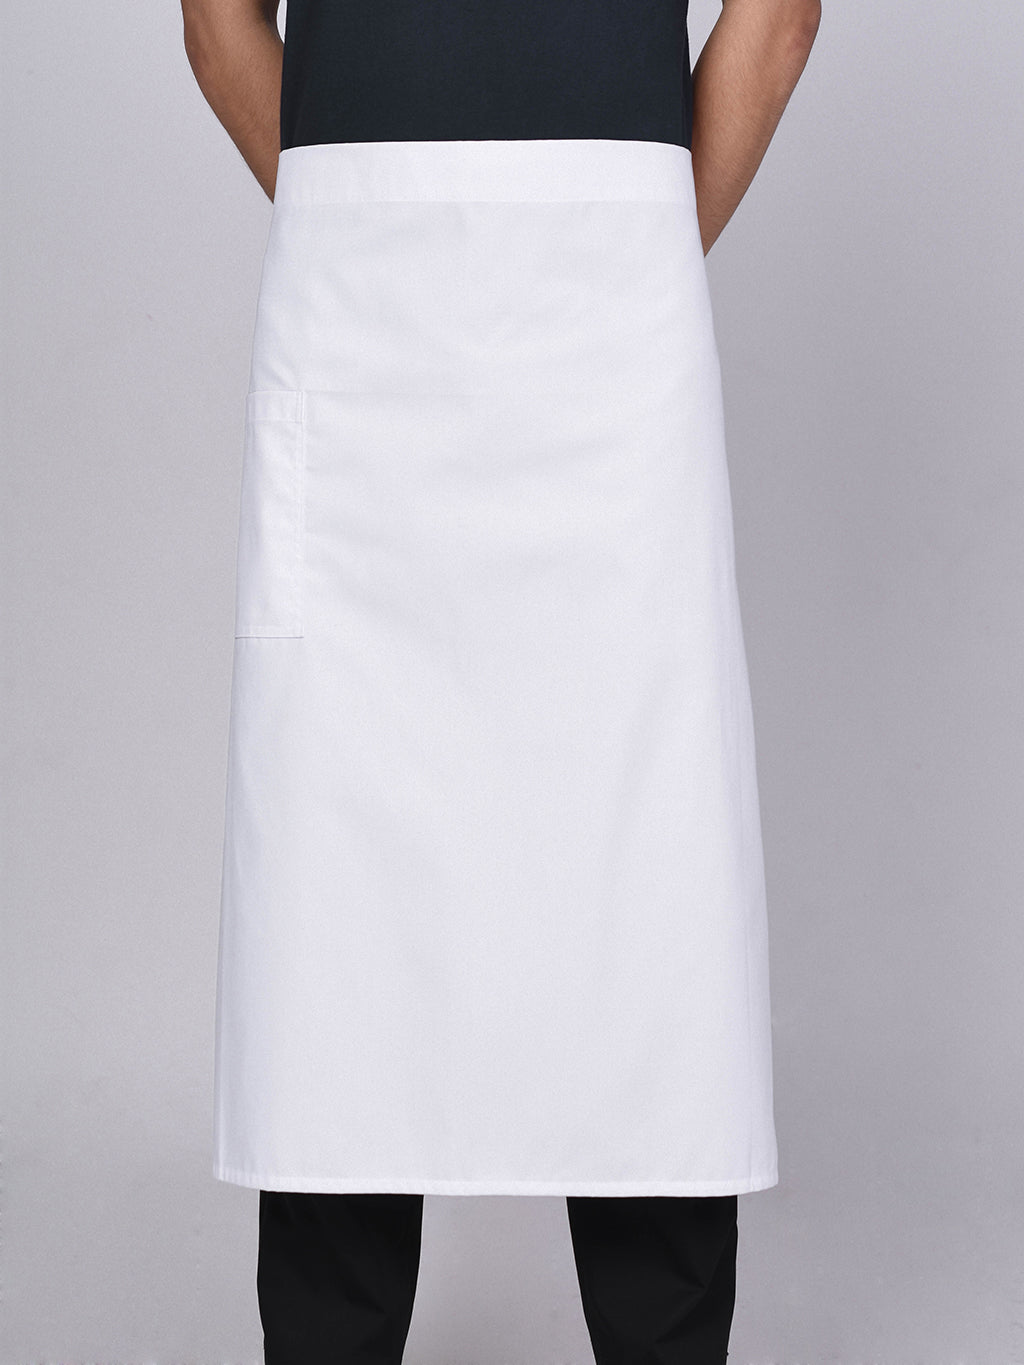 "White Chef Apron 27"" - Green Chef Wear"